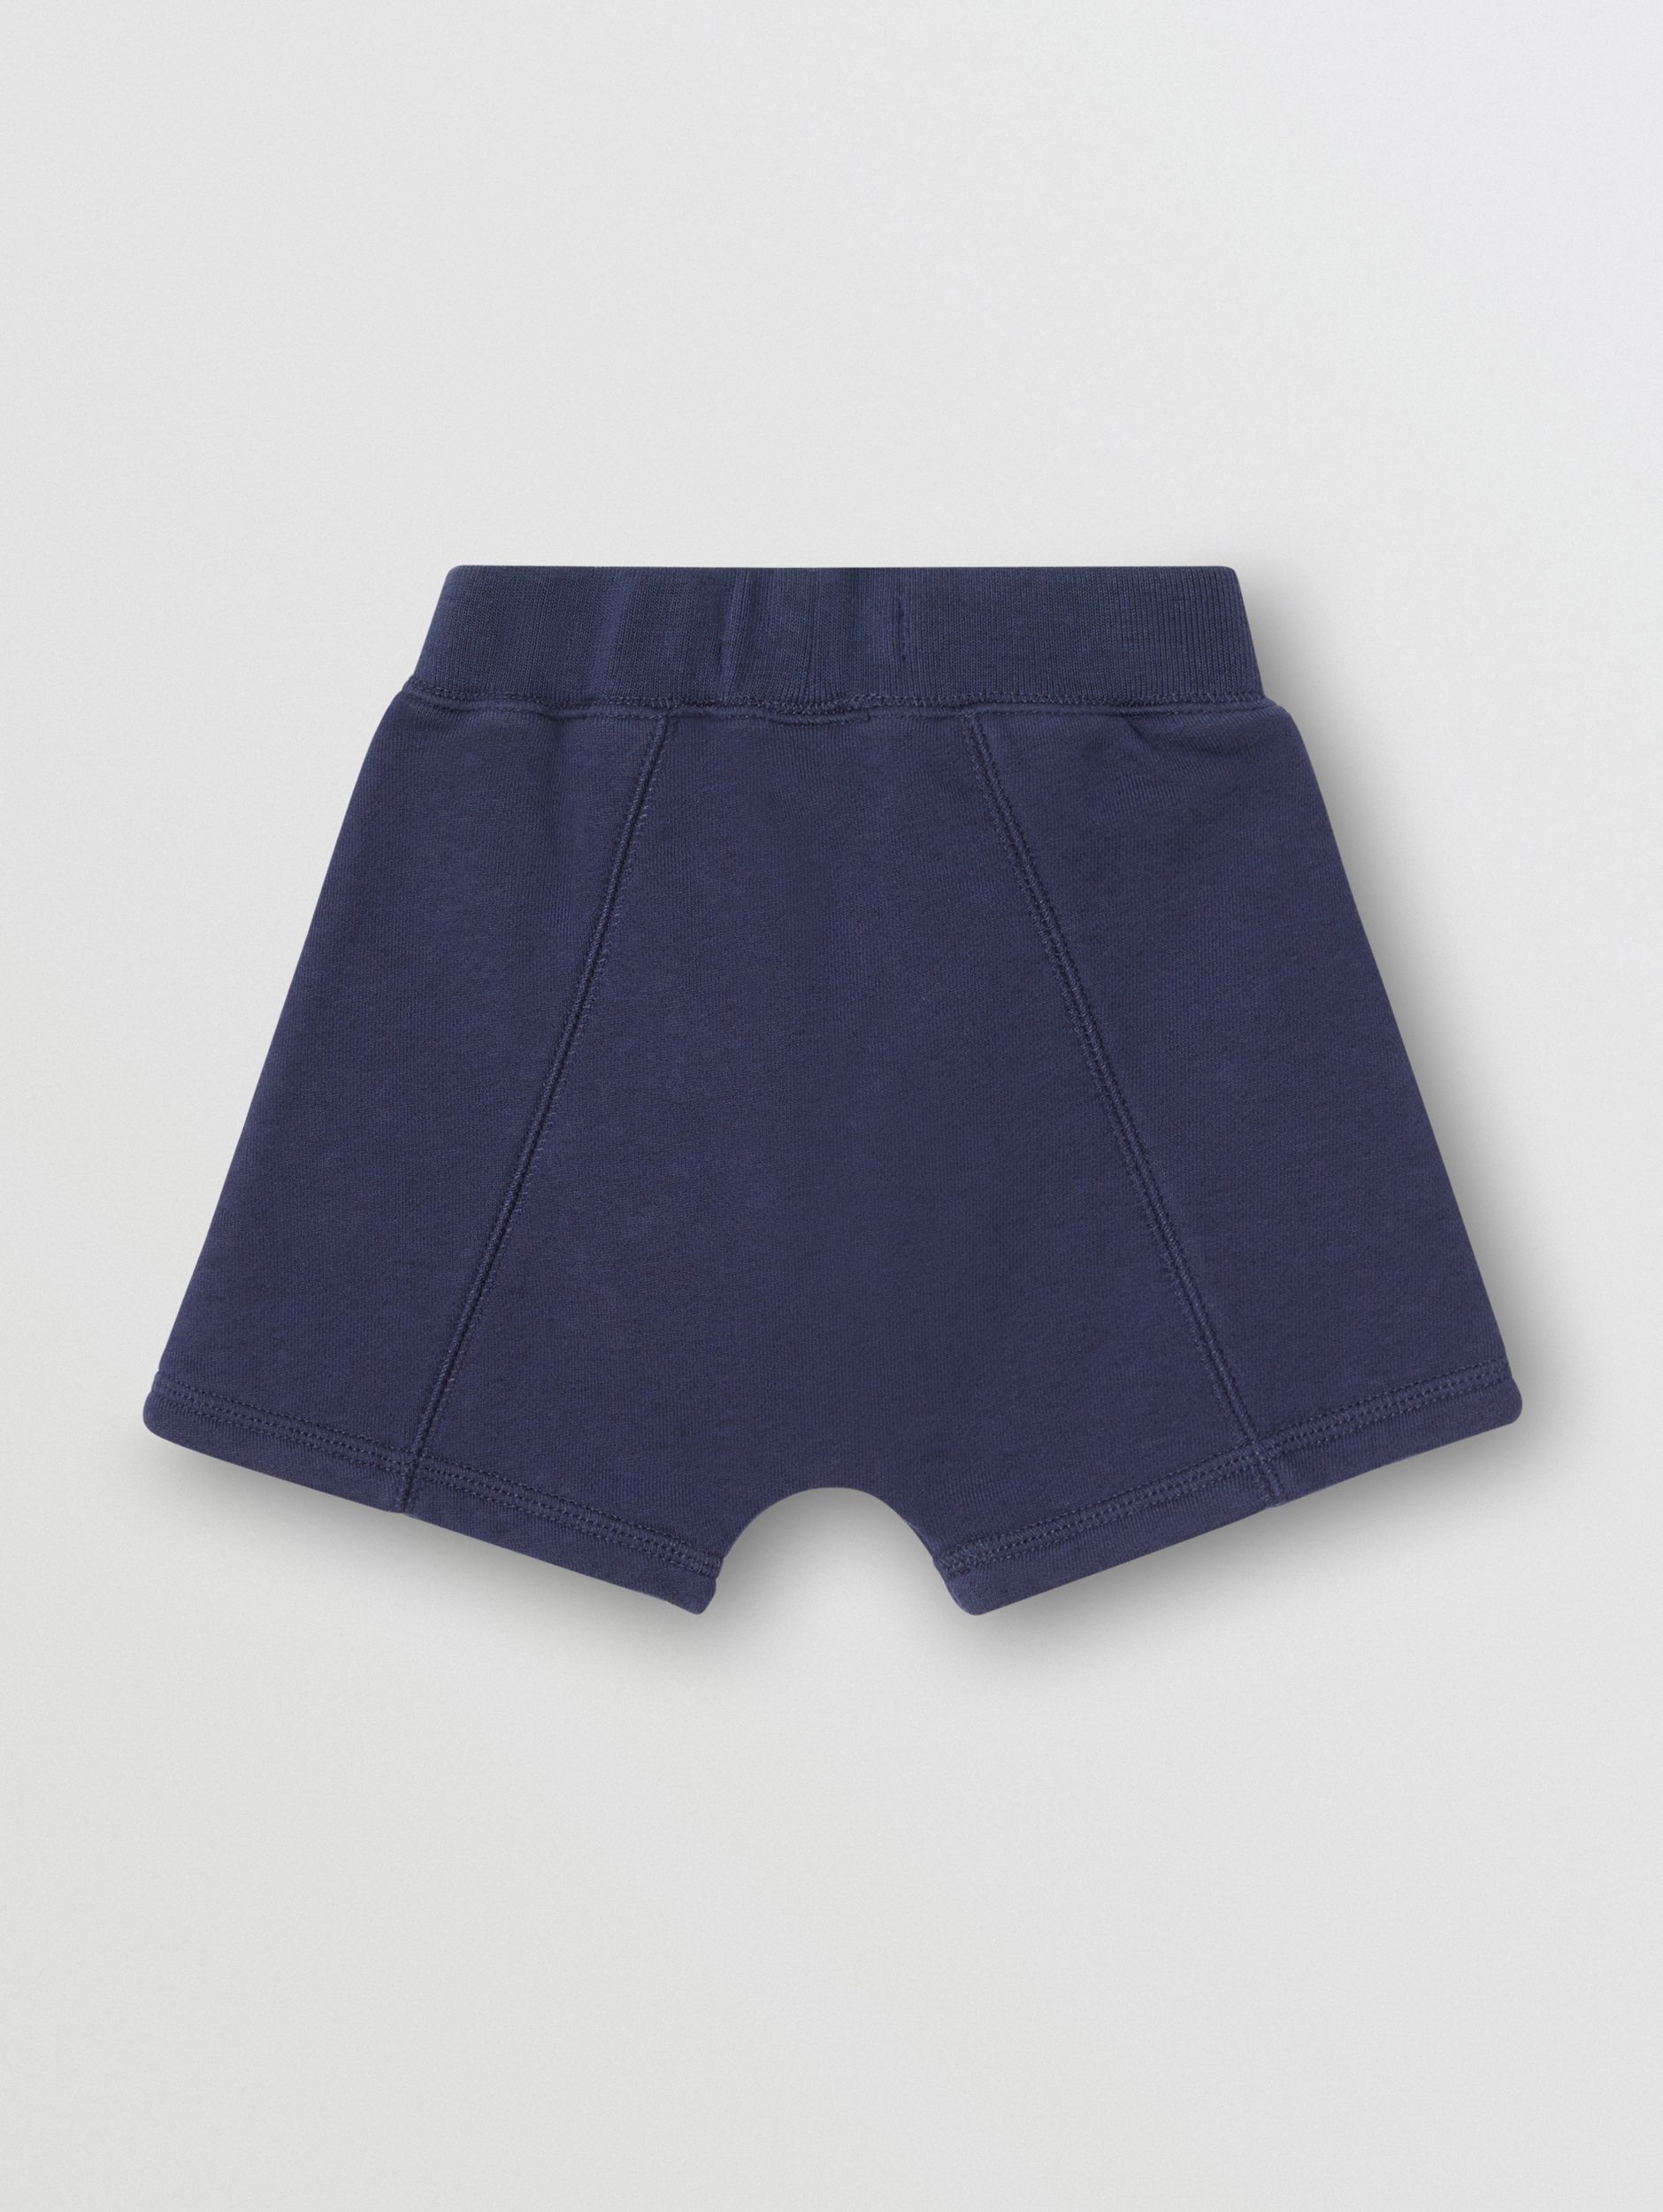 Kingdom Motif Cotton Drawcord Shorts in Slate Blue Melange - Children | Burberry - 4